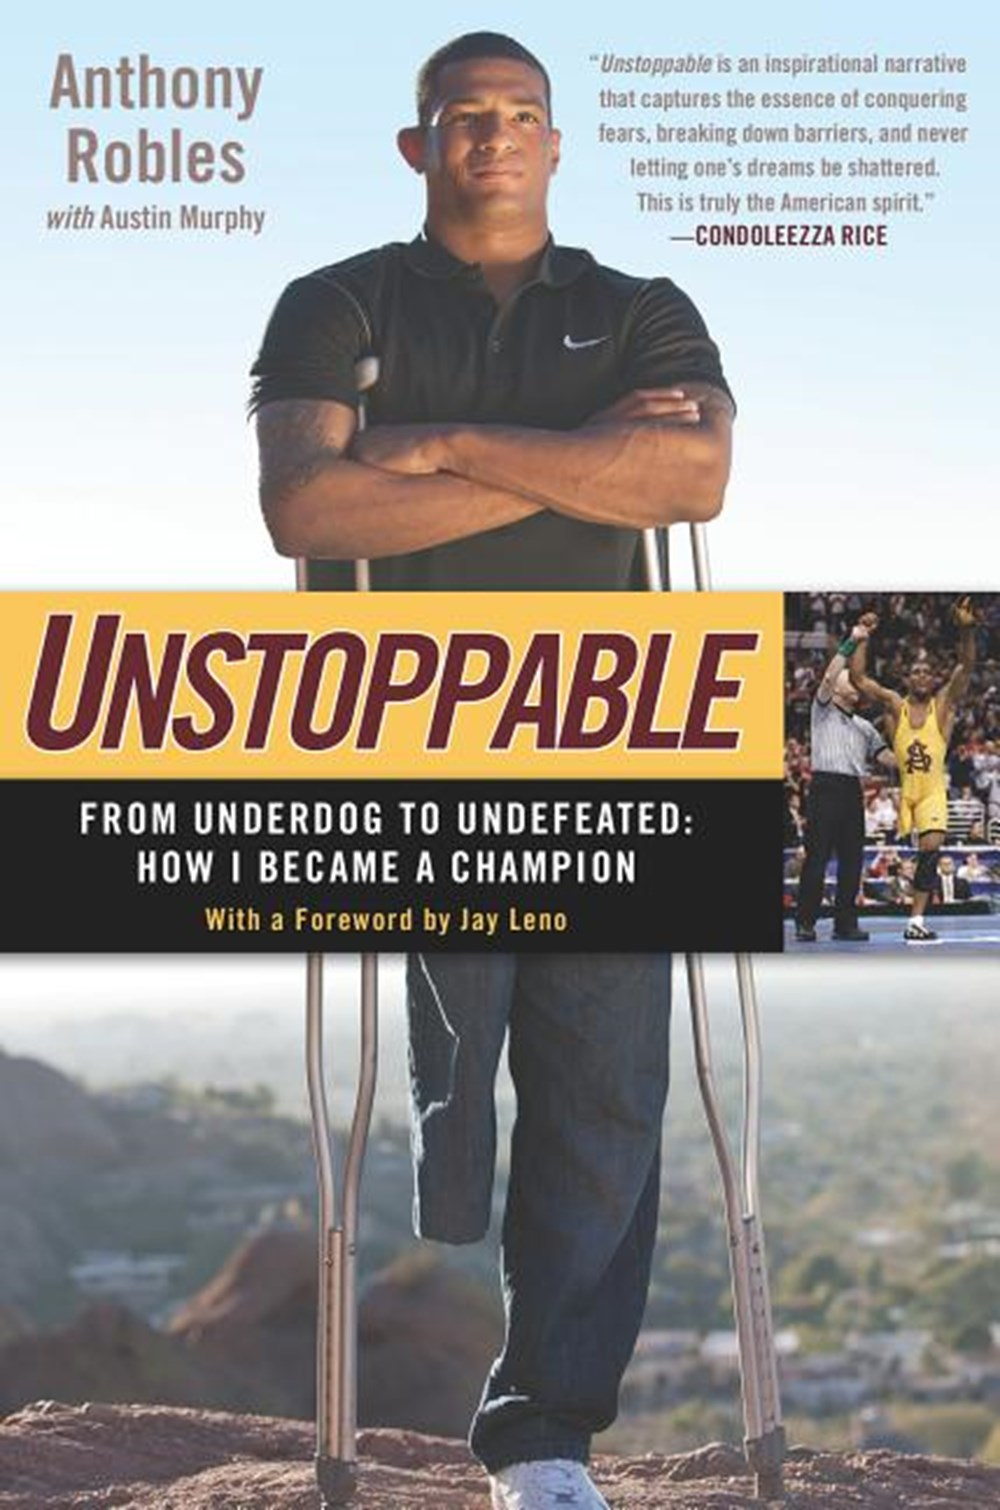 Unstoppable From Underdog to Undefeated: How I Became a Champion